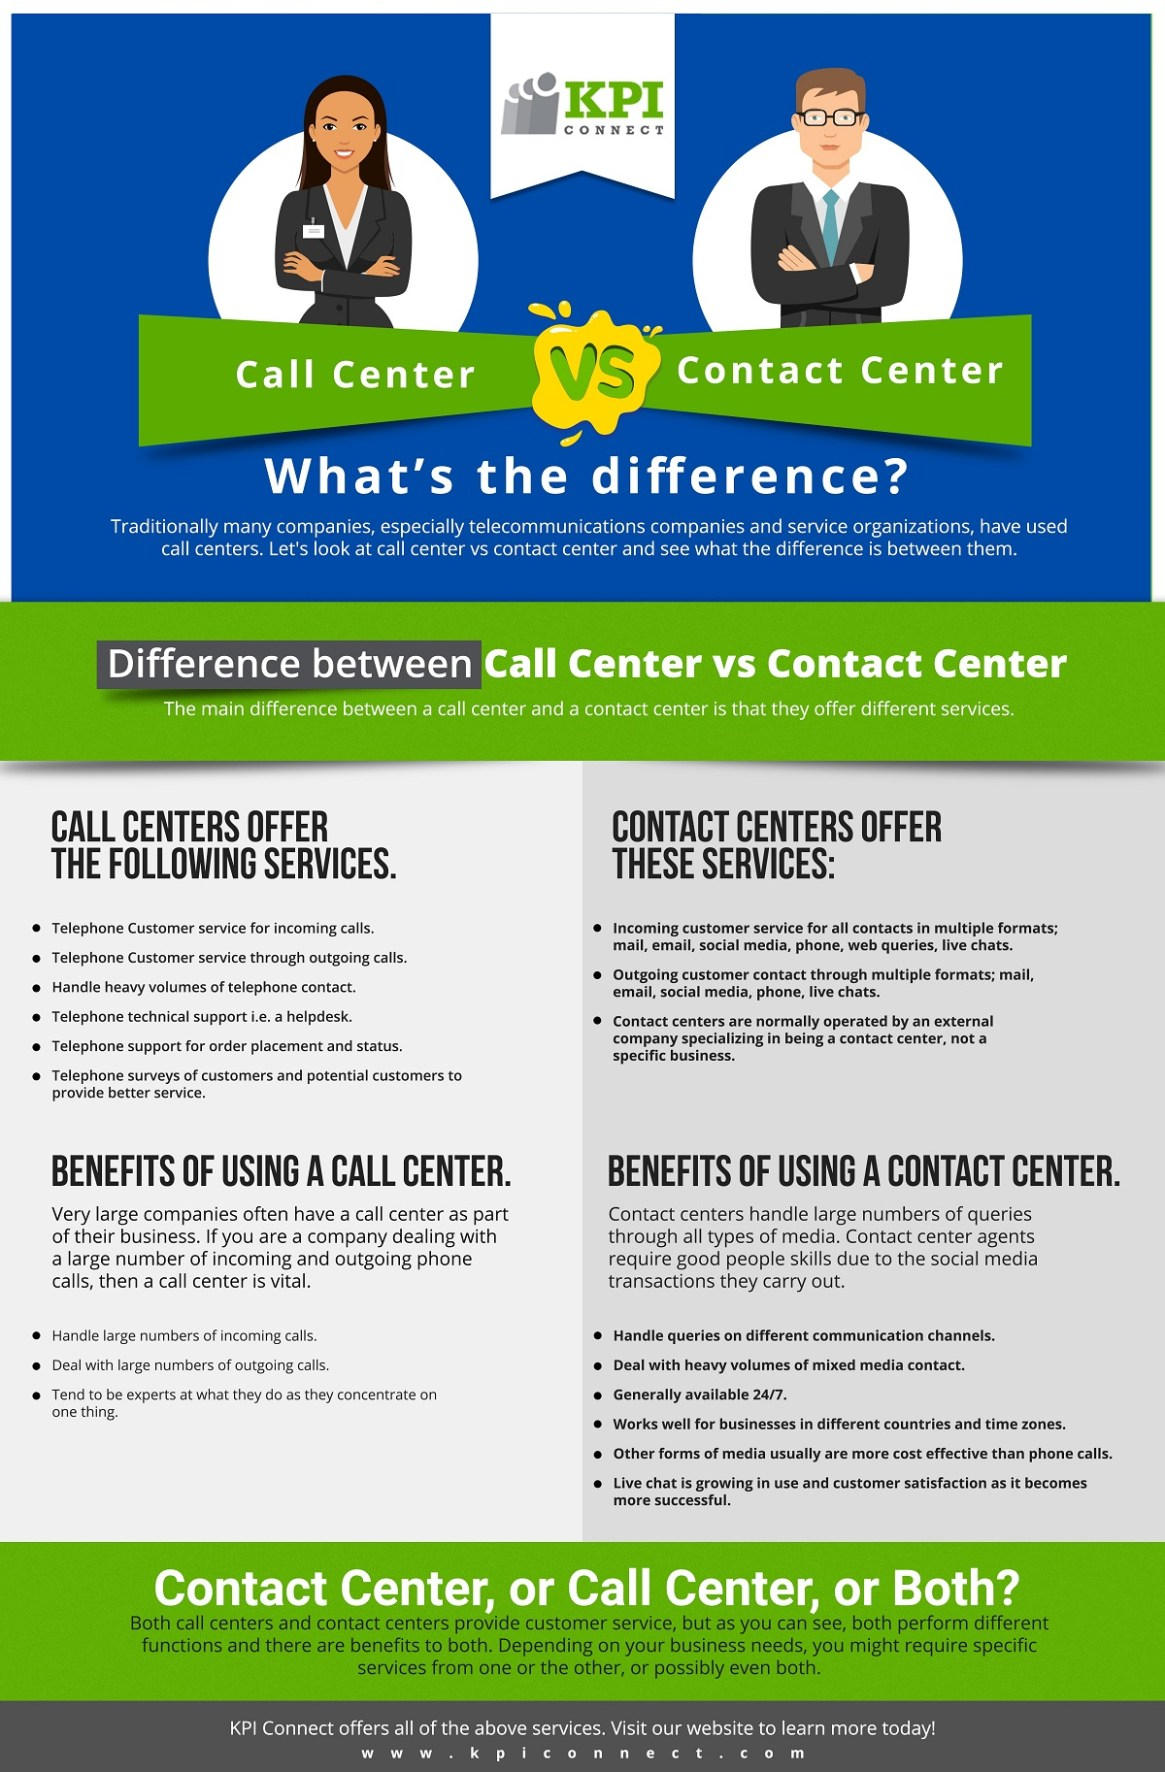 Call Center vs Contact Center. What's the difference?